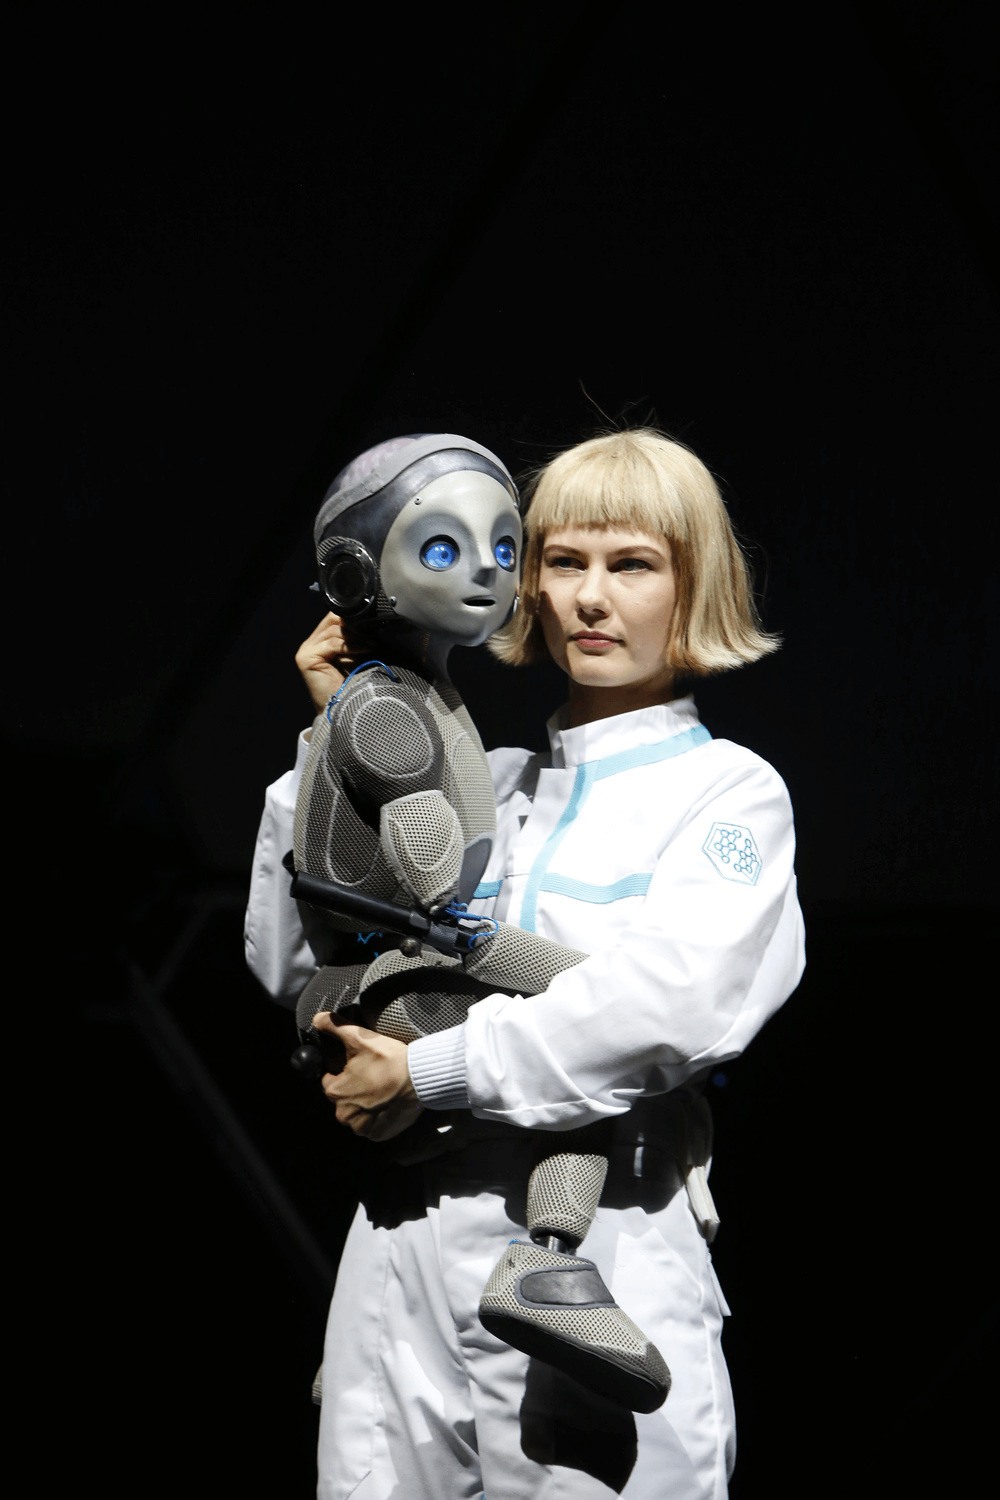 close up of Robot Boy being held tightly by a Lab assistant dressed in sci fi white ovearalls